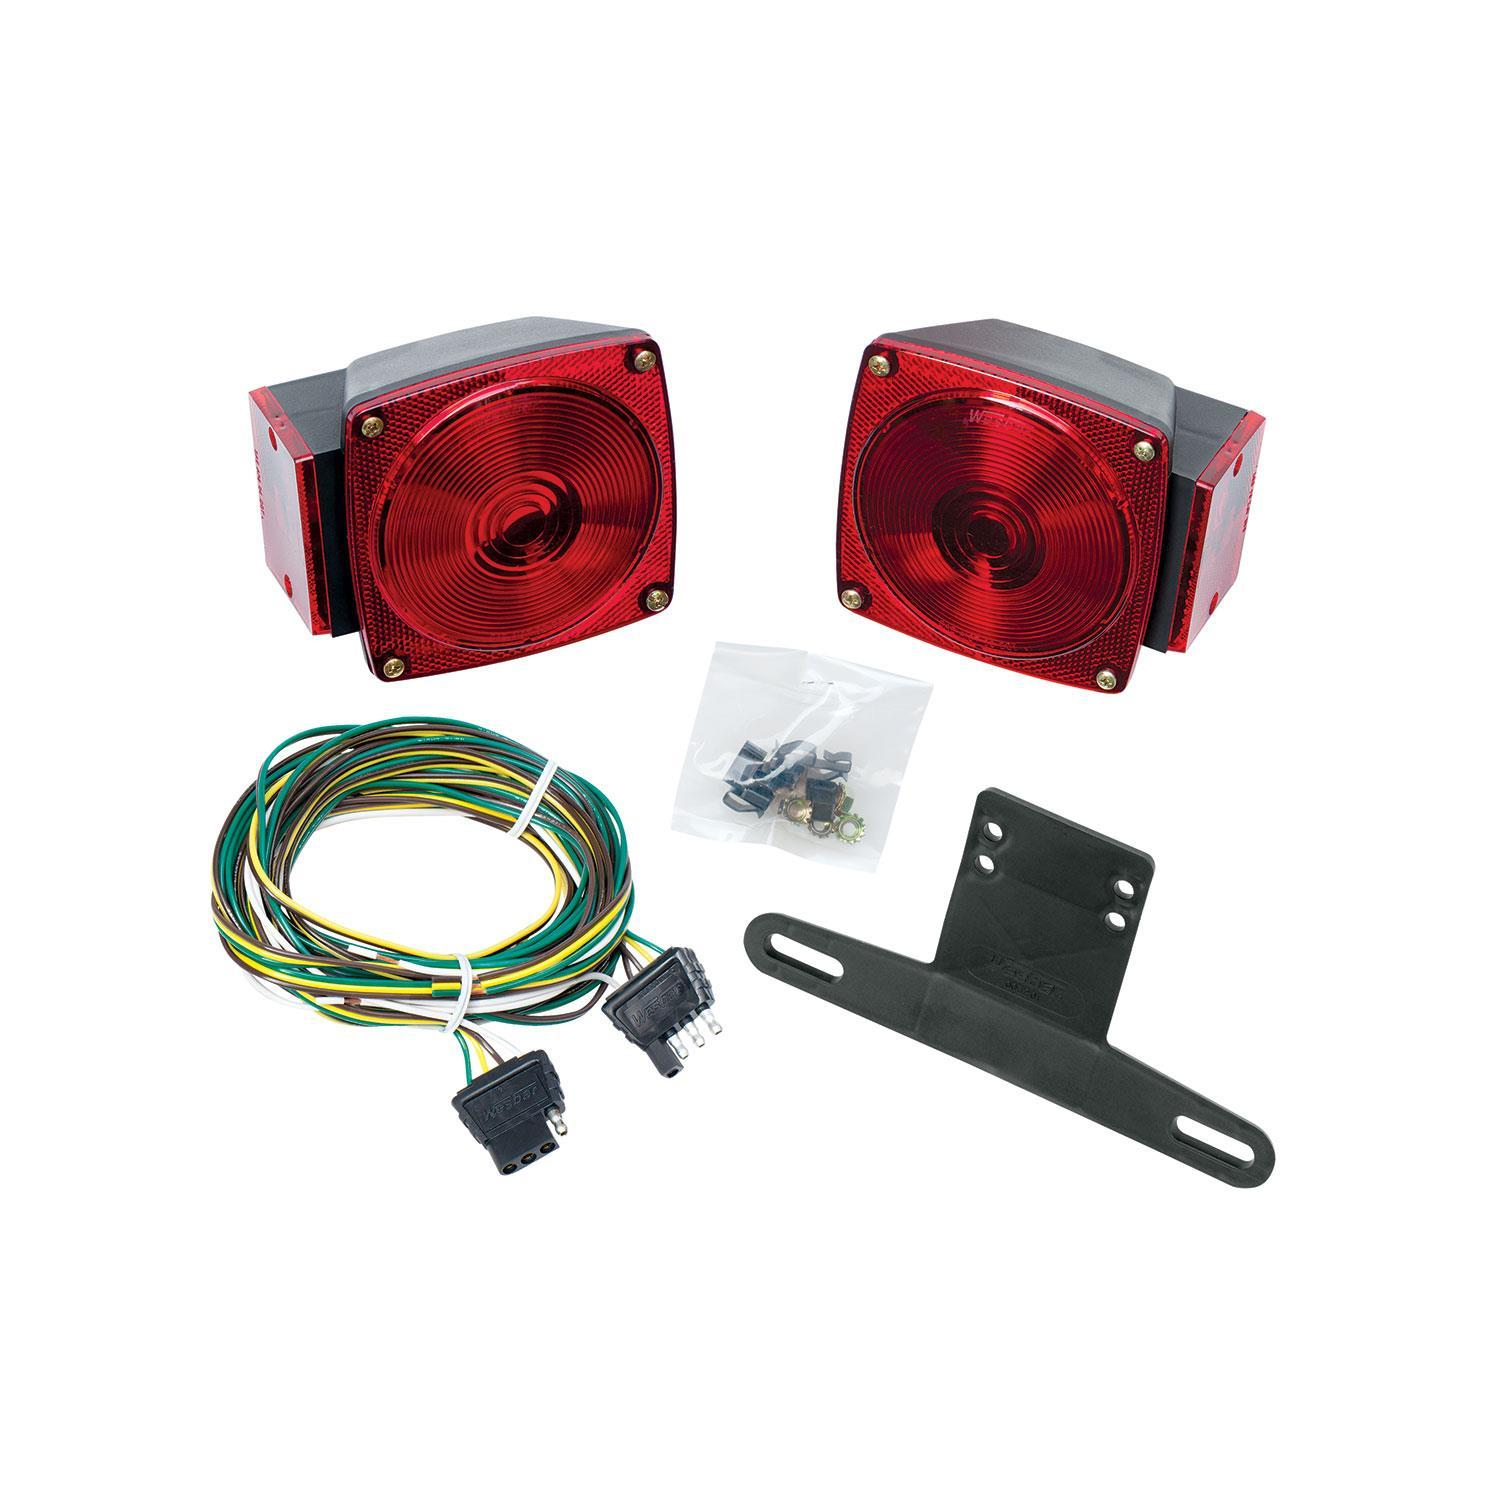 Wesbar Led Waterproof Trailer Light Kit With 25 Ft Wiring Harness